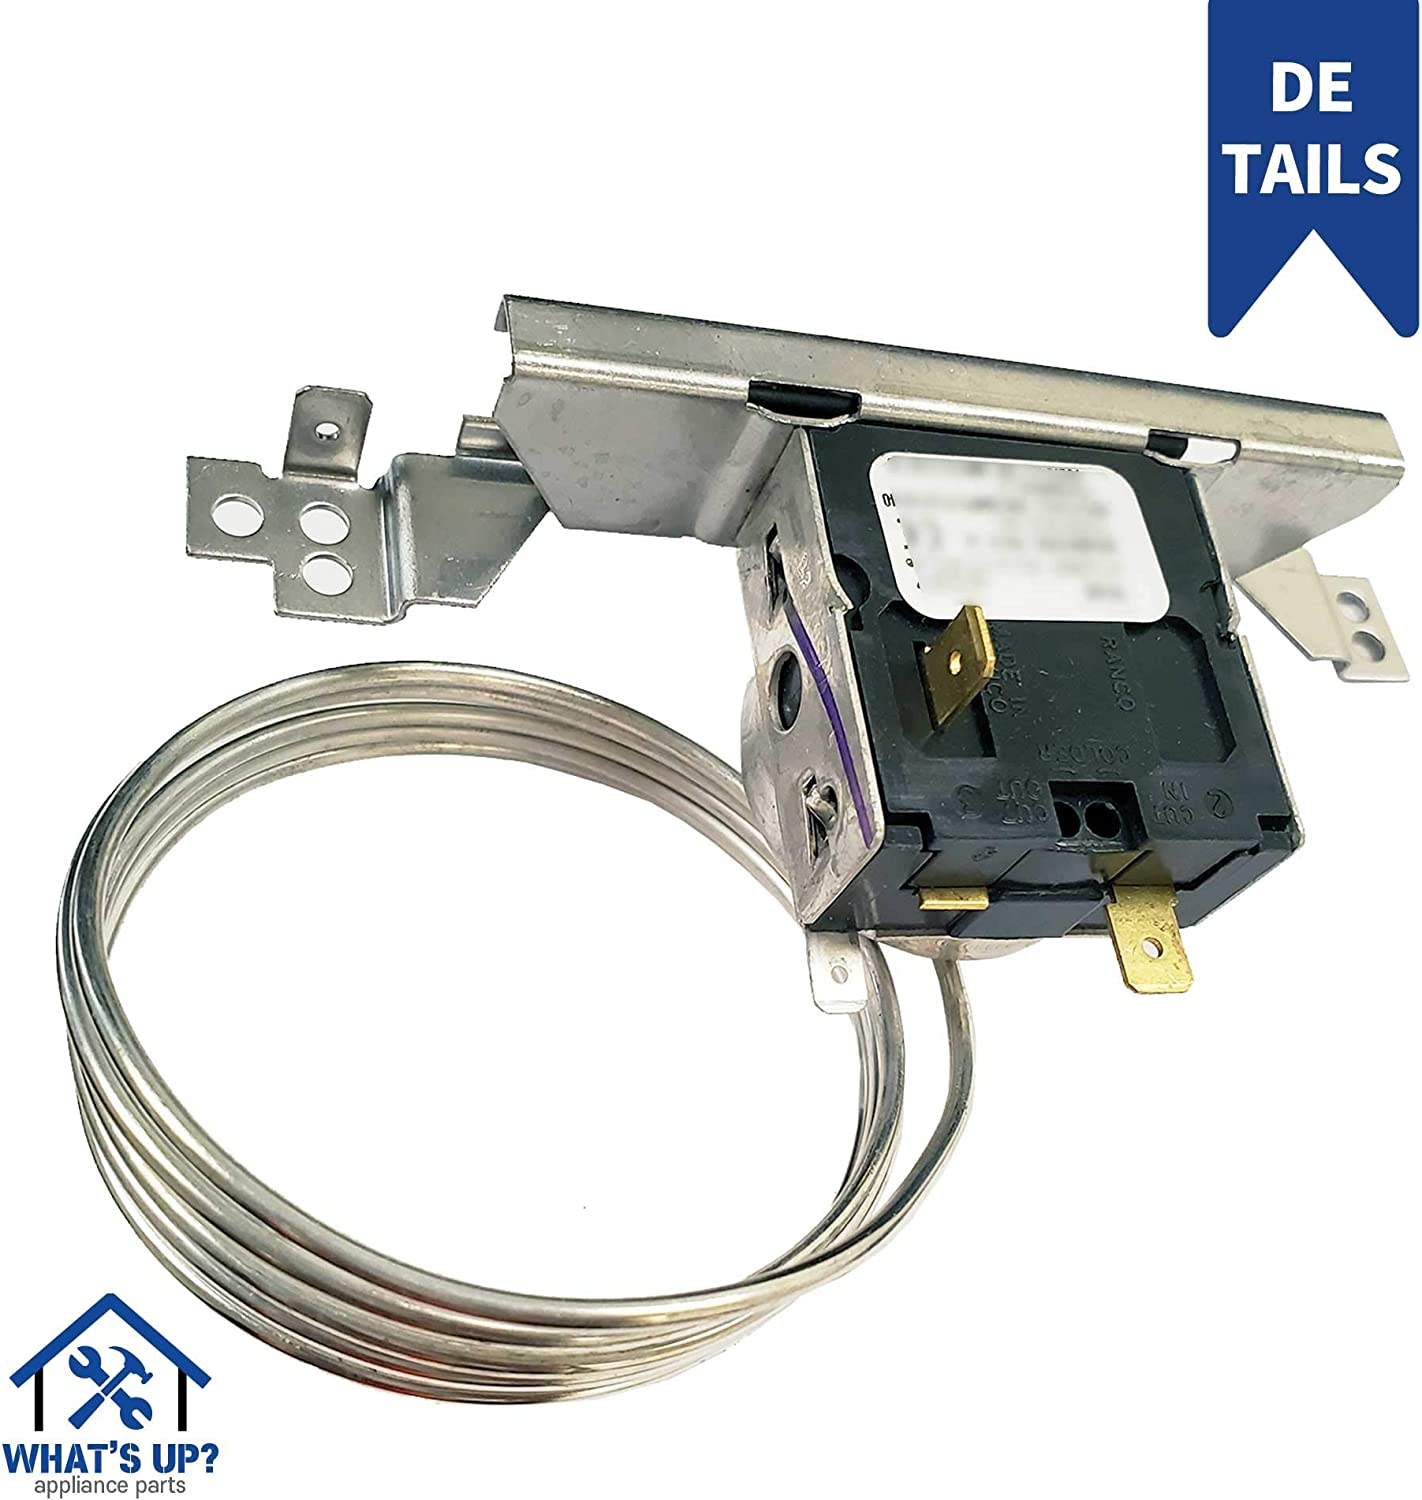 Whats Up W11035627 for W11088945 OEM Replacement Part for Refrigerator Cold Control Thermostat Compatible with Whirlpool replaces 2315562 2161282 2169507 2175515 WP2315562